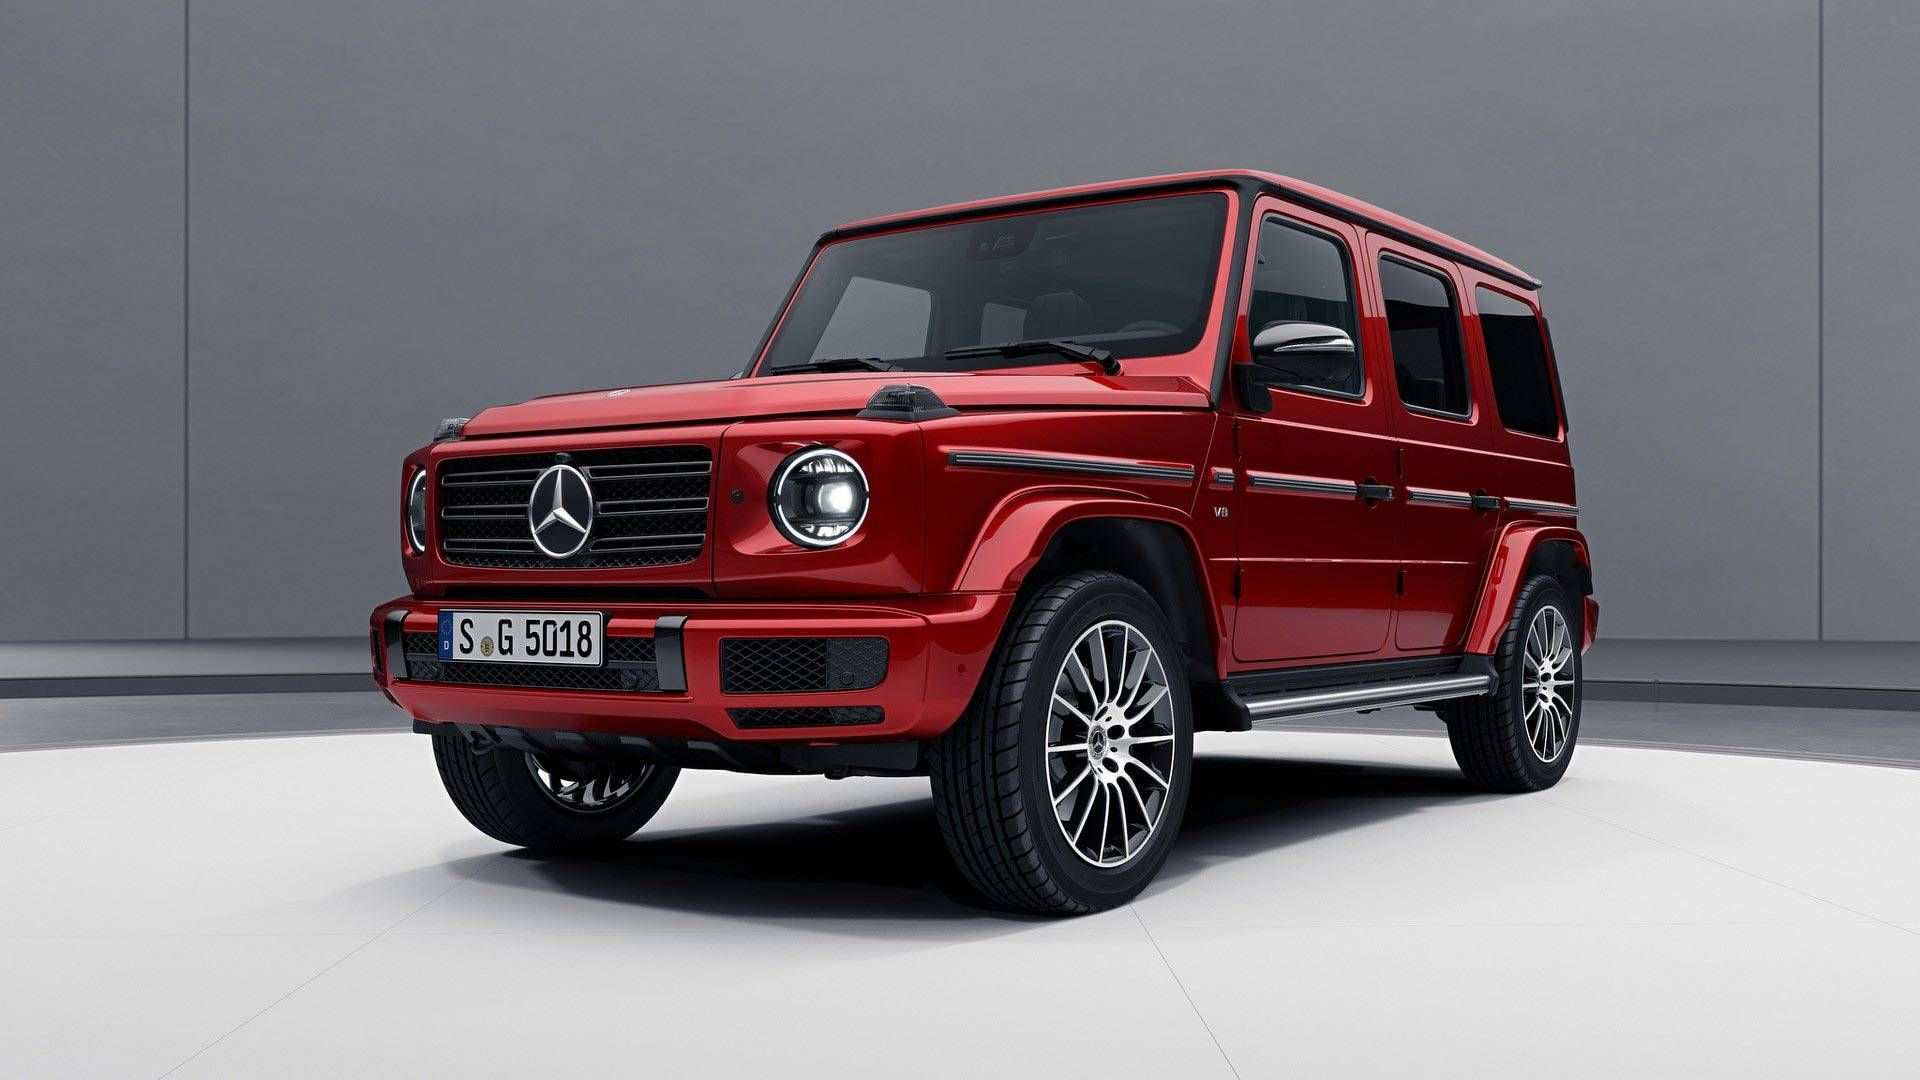 86 New 2020 Mercedes G Wagon Exterior Date Performance and New Engine for 2020 Mercedes G Wagon Exterior Date